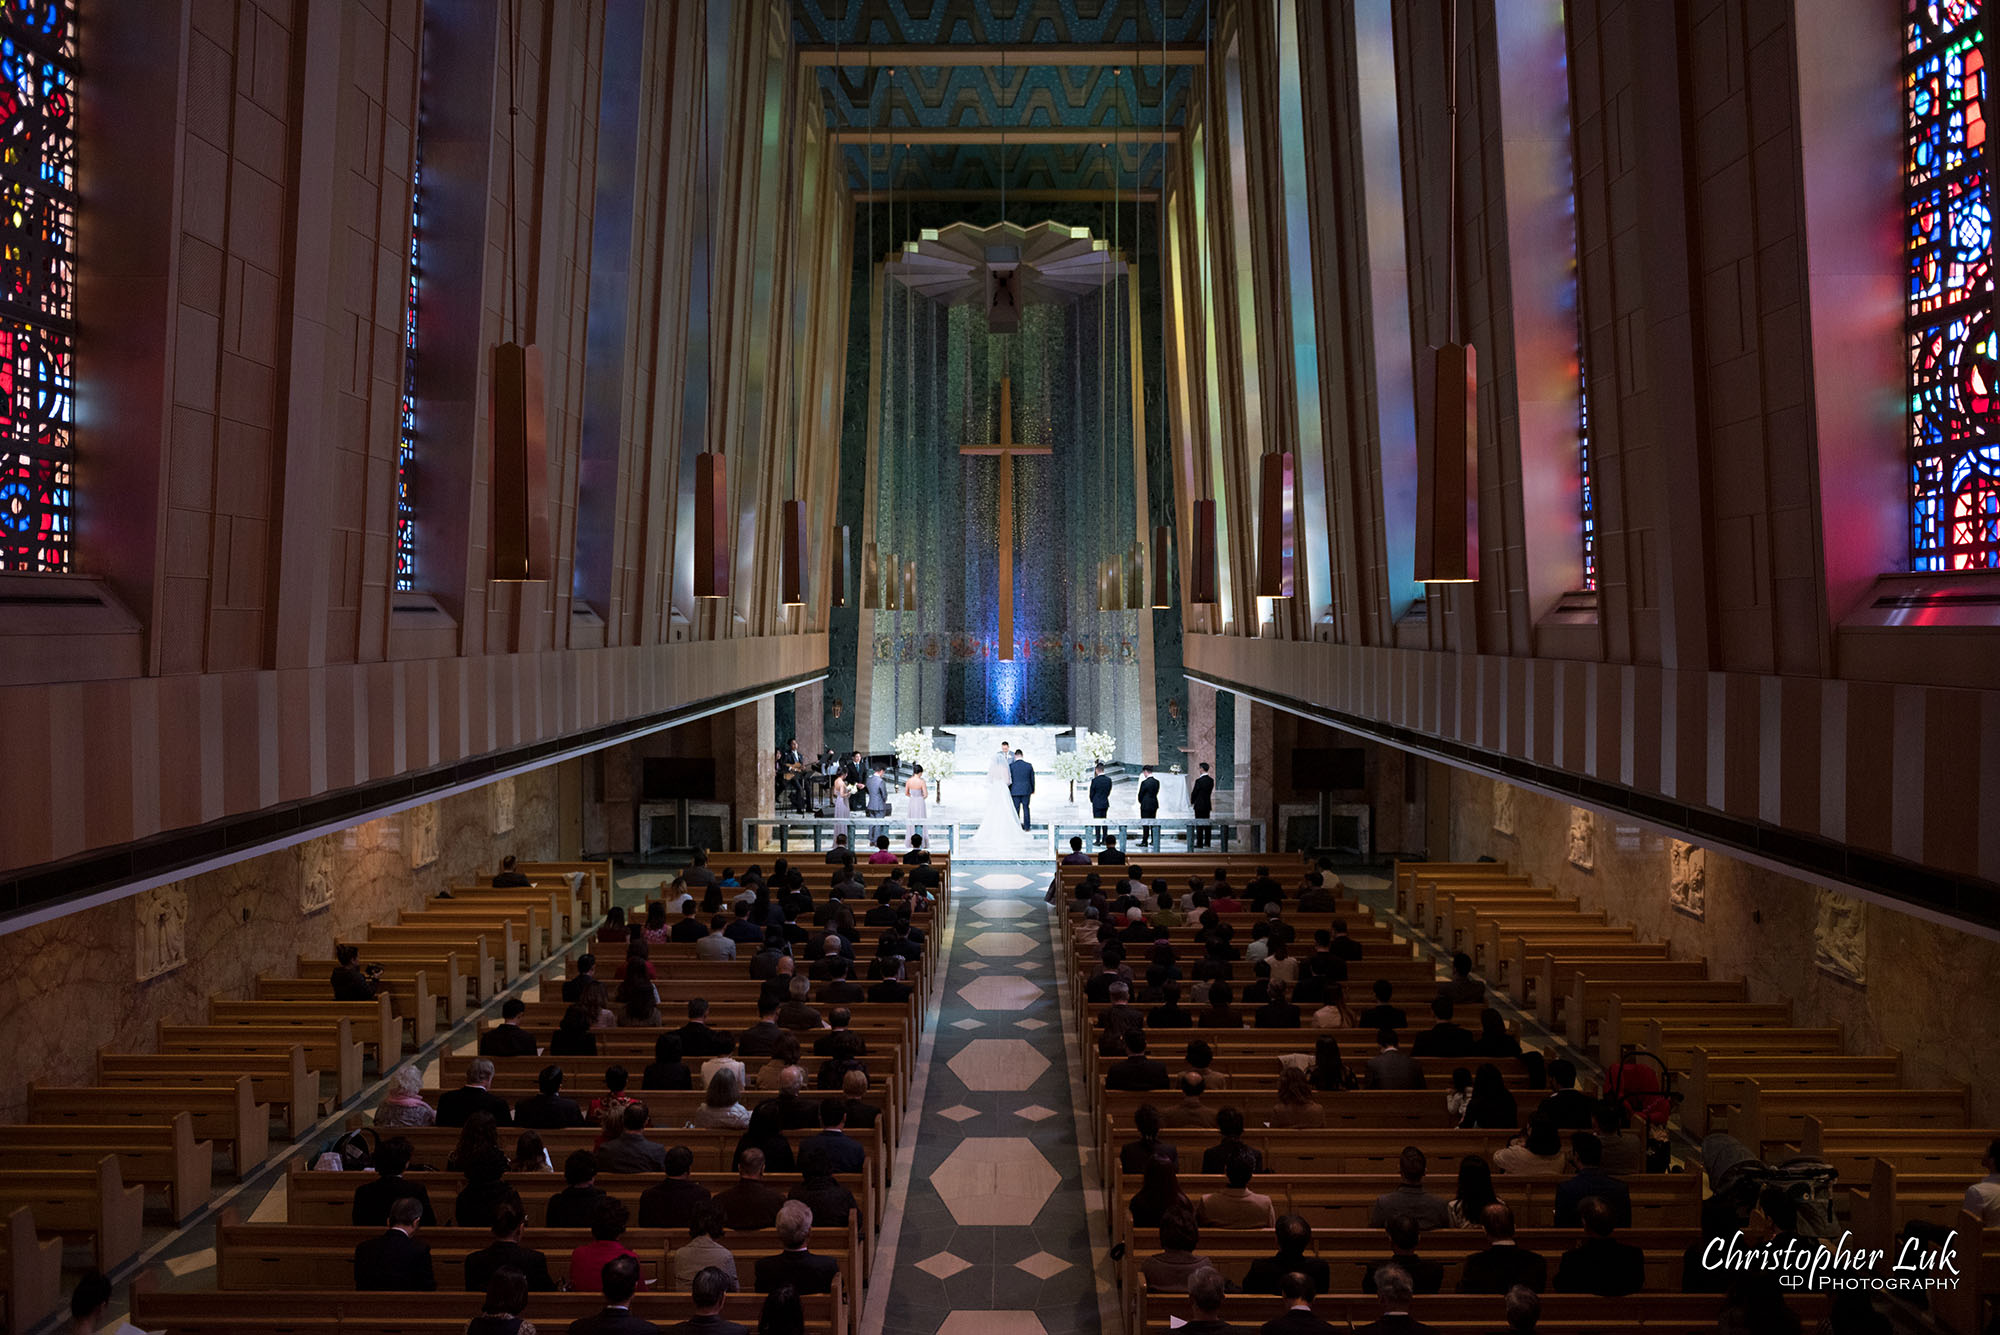 Christopher Luk Toronto Wedding Photography Tyndale Chapel Church Ceremony Venue Location Bride Groom Altar Stained Glass Windows Balcony Wide Landscape